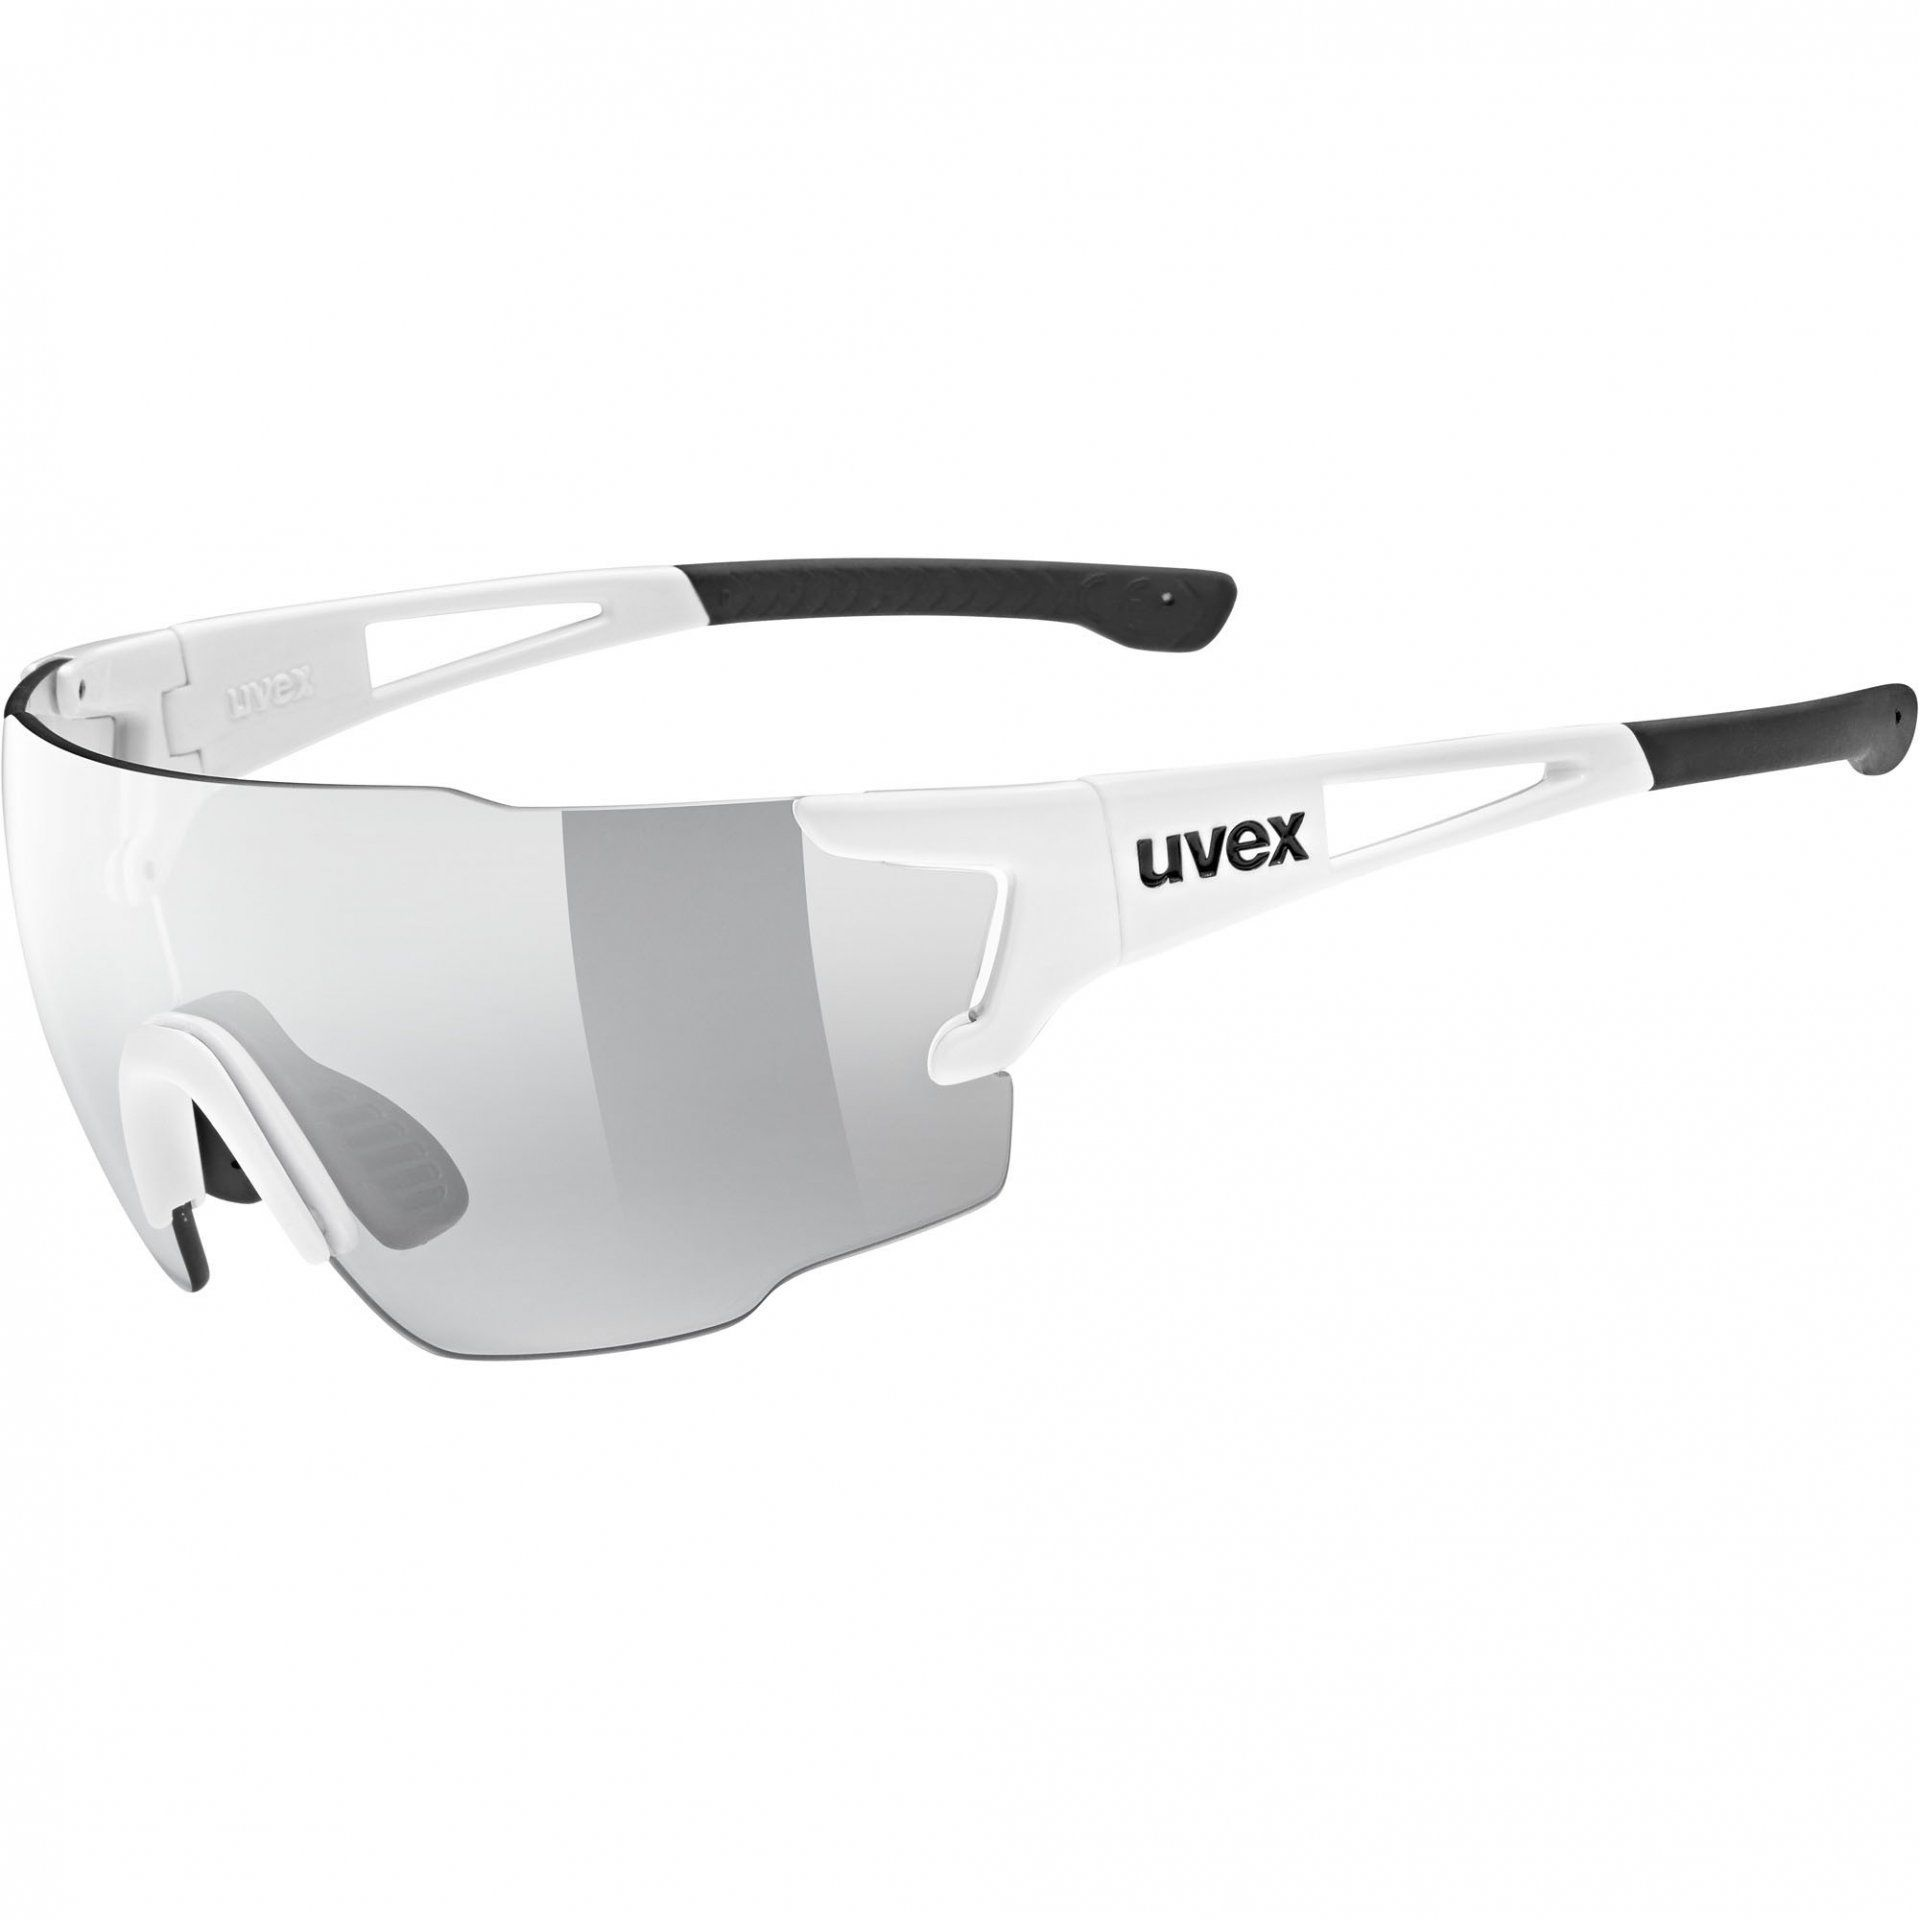 OKULARY UVEX SPORTSTYLE 804 V WHITE|SMOKE 8801 1